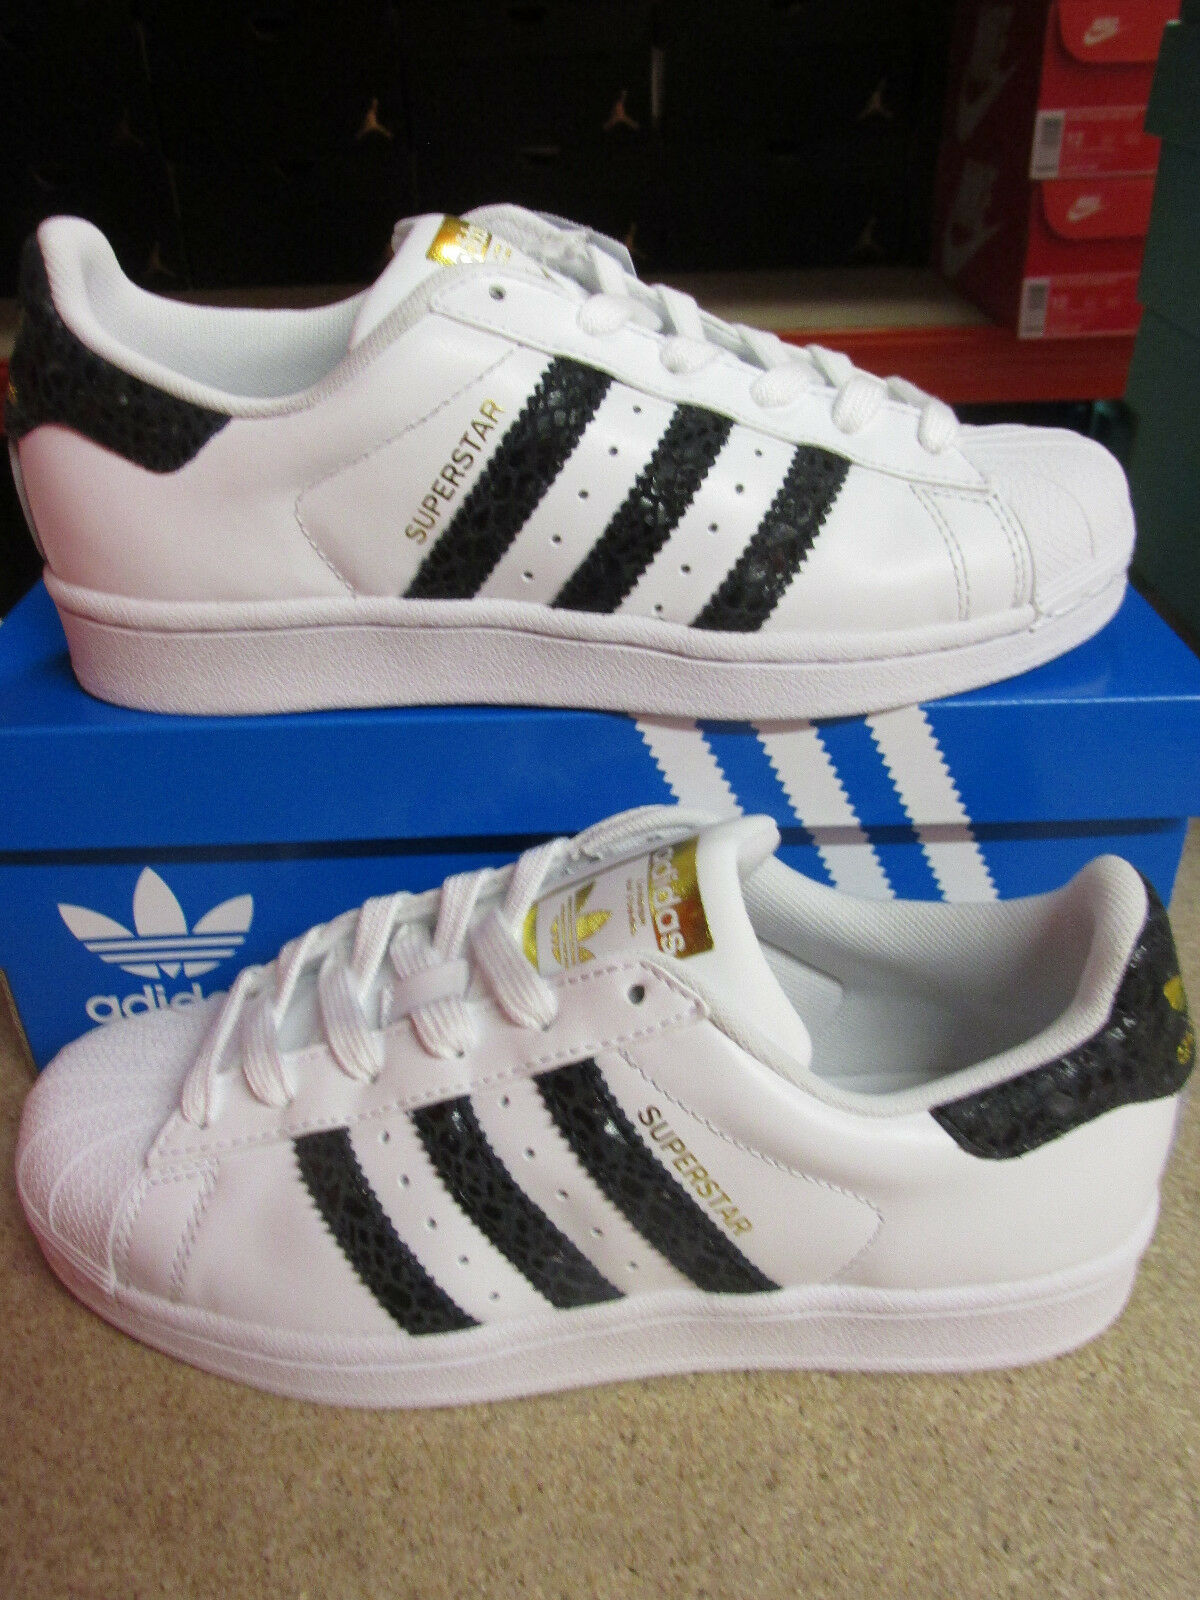 Adidas Originals Superstar Womens S79418 Trainers Sneakers Shoes